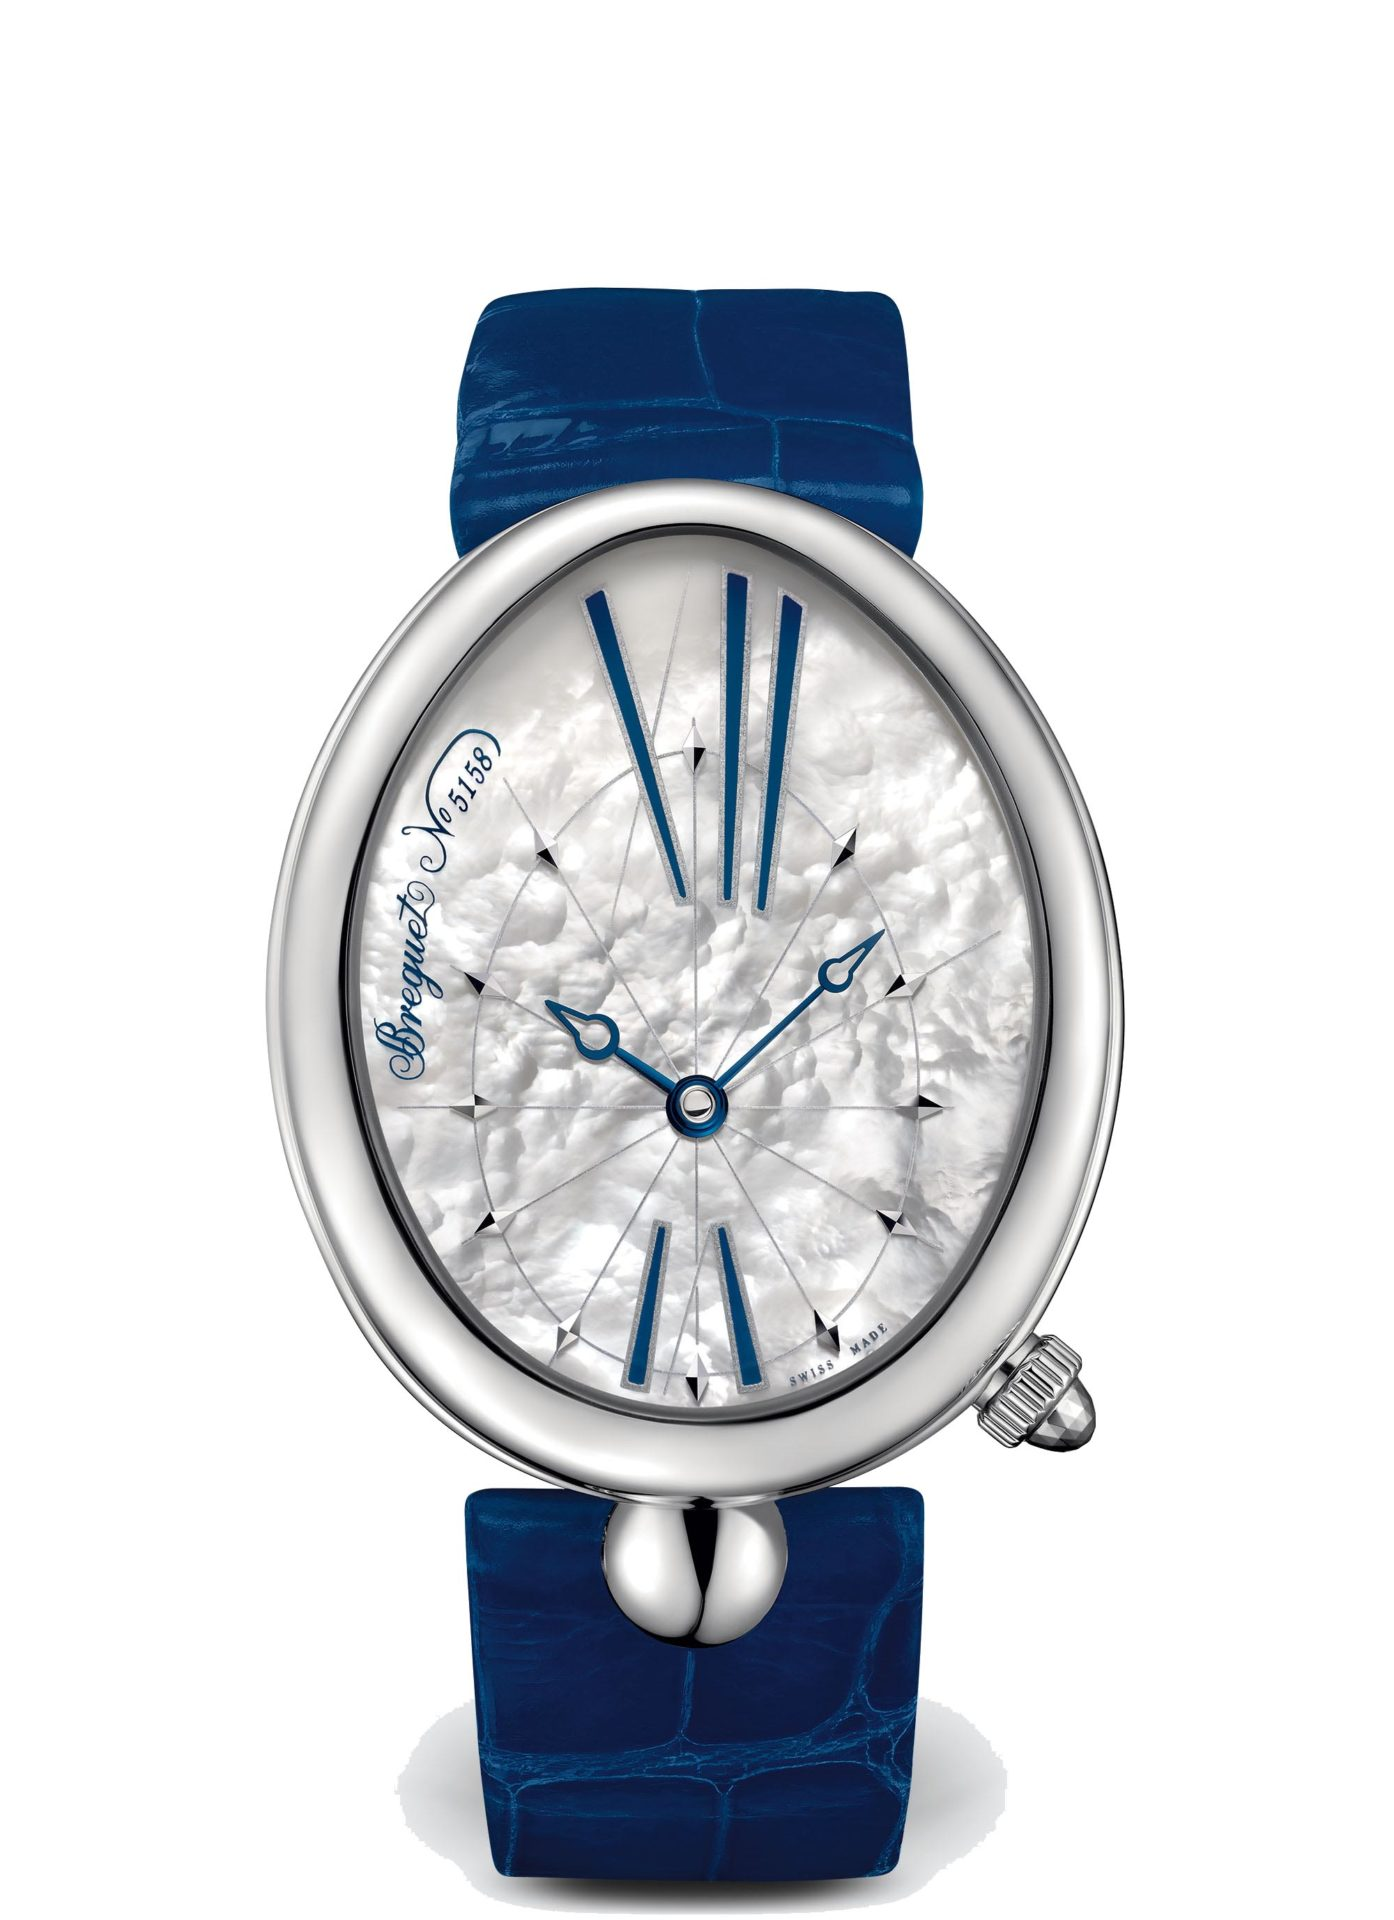 Breguet-Reine-de-Naples-8967-Hall-of-Time-8967st-51-986